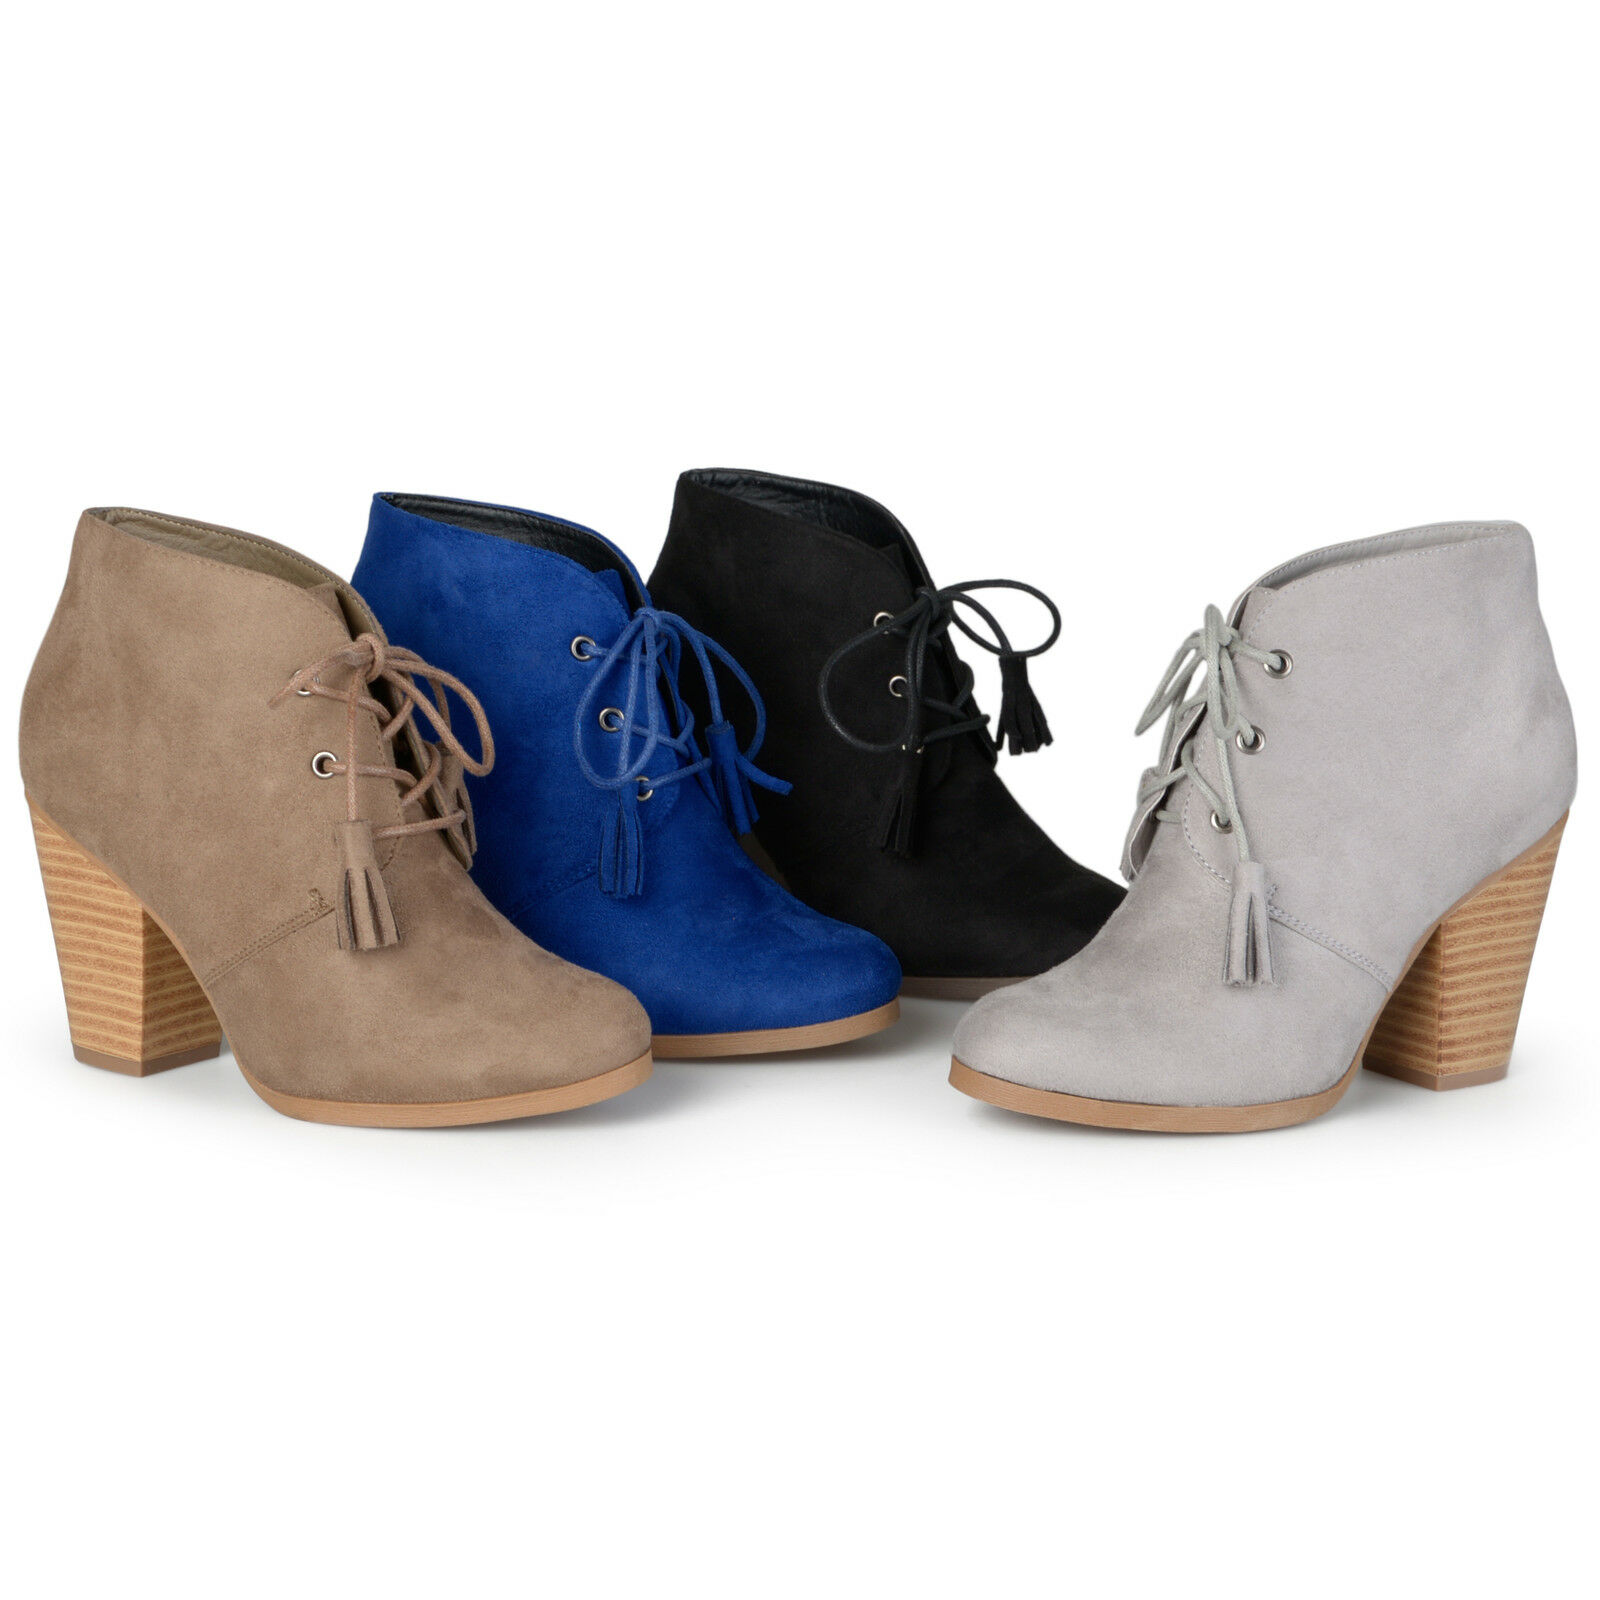 Journee Collection Womens Chunky Heel Lace up Faux Suede Ankle Booties New